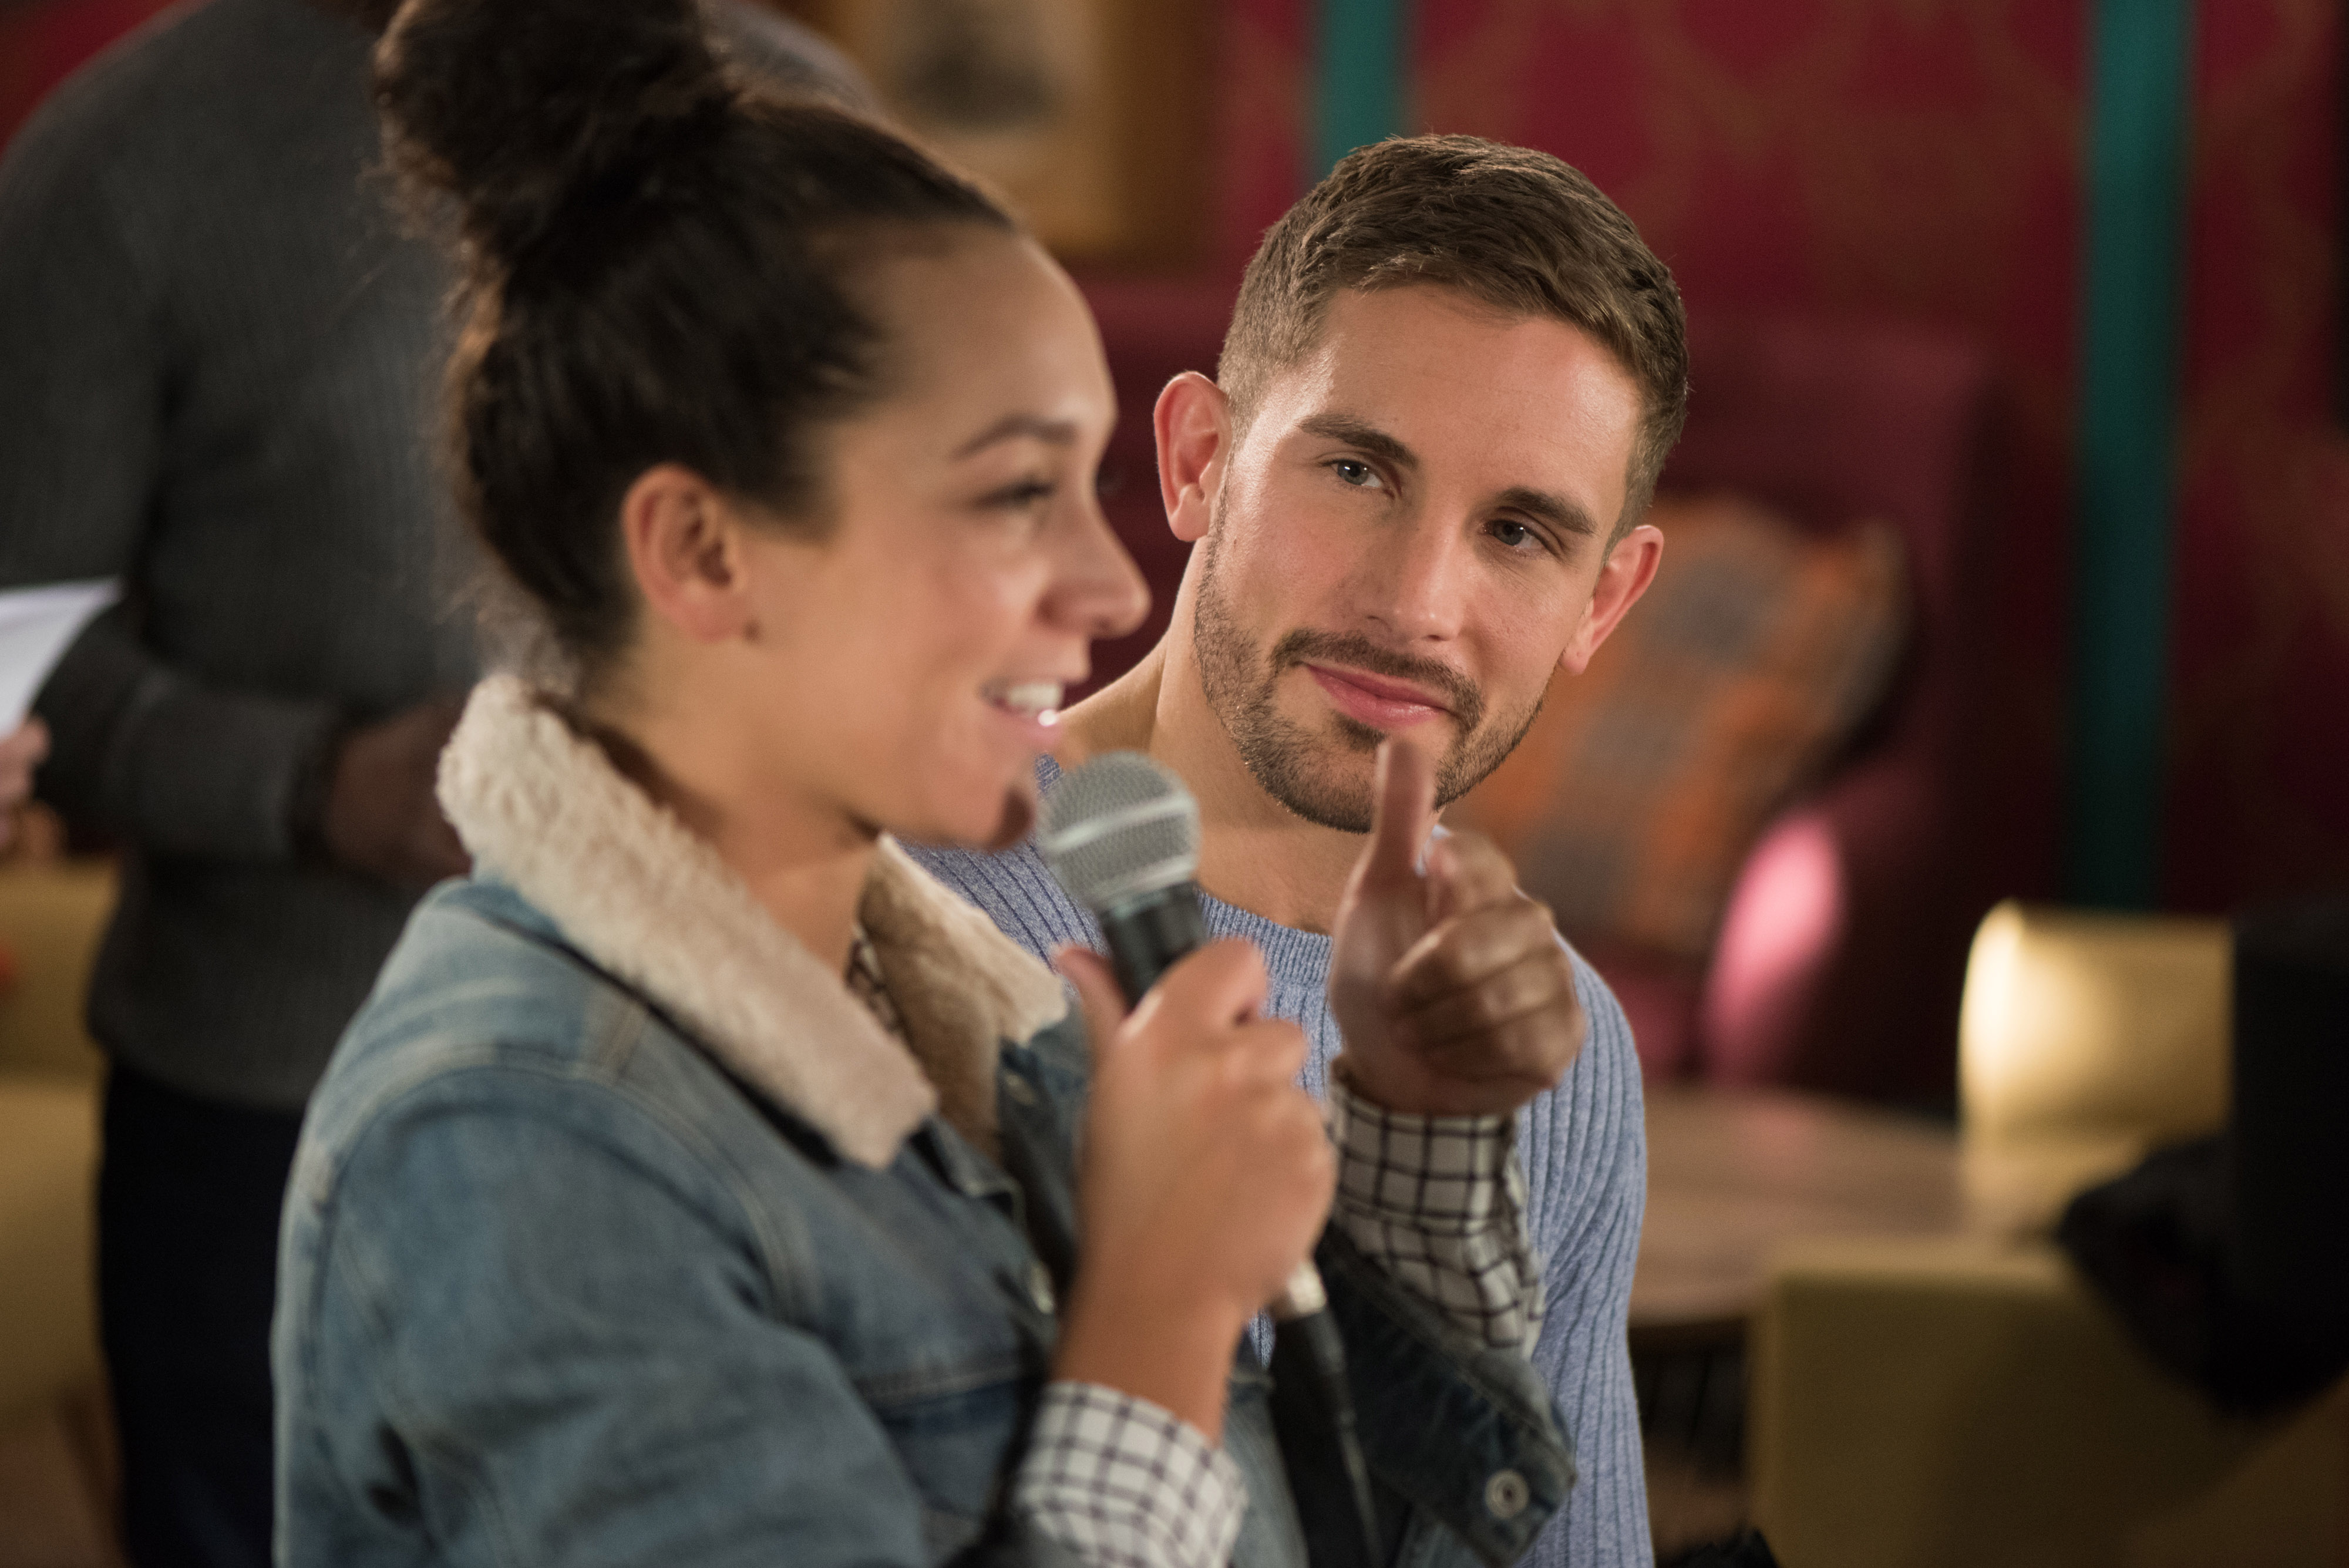 Hollyoaks spoilers: Cleo McQueen and Brody Hudson get closer